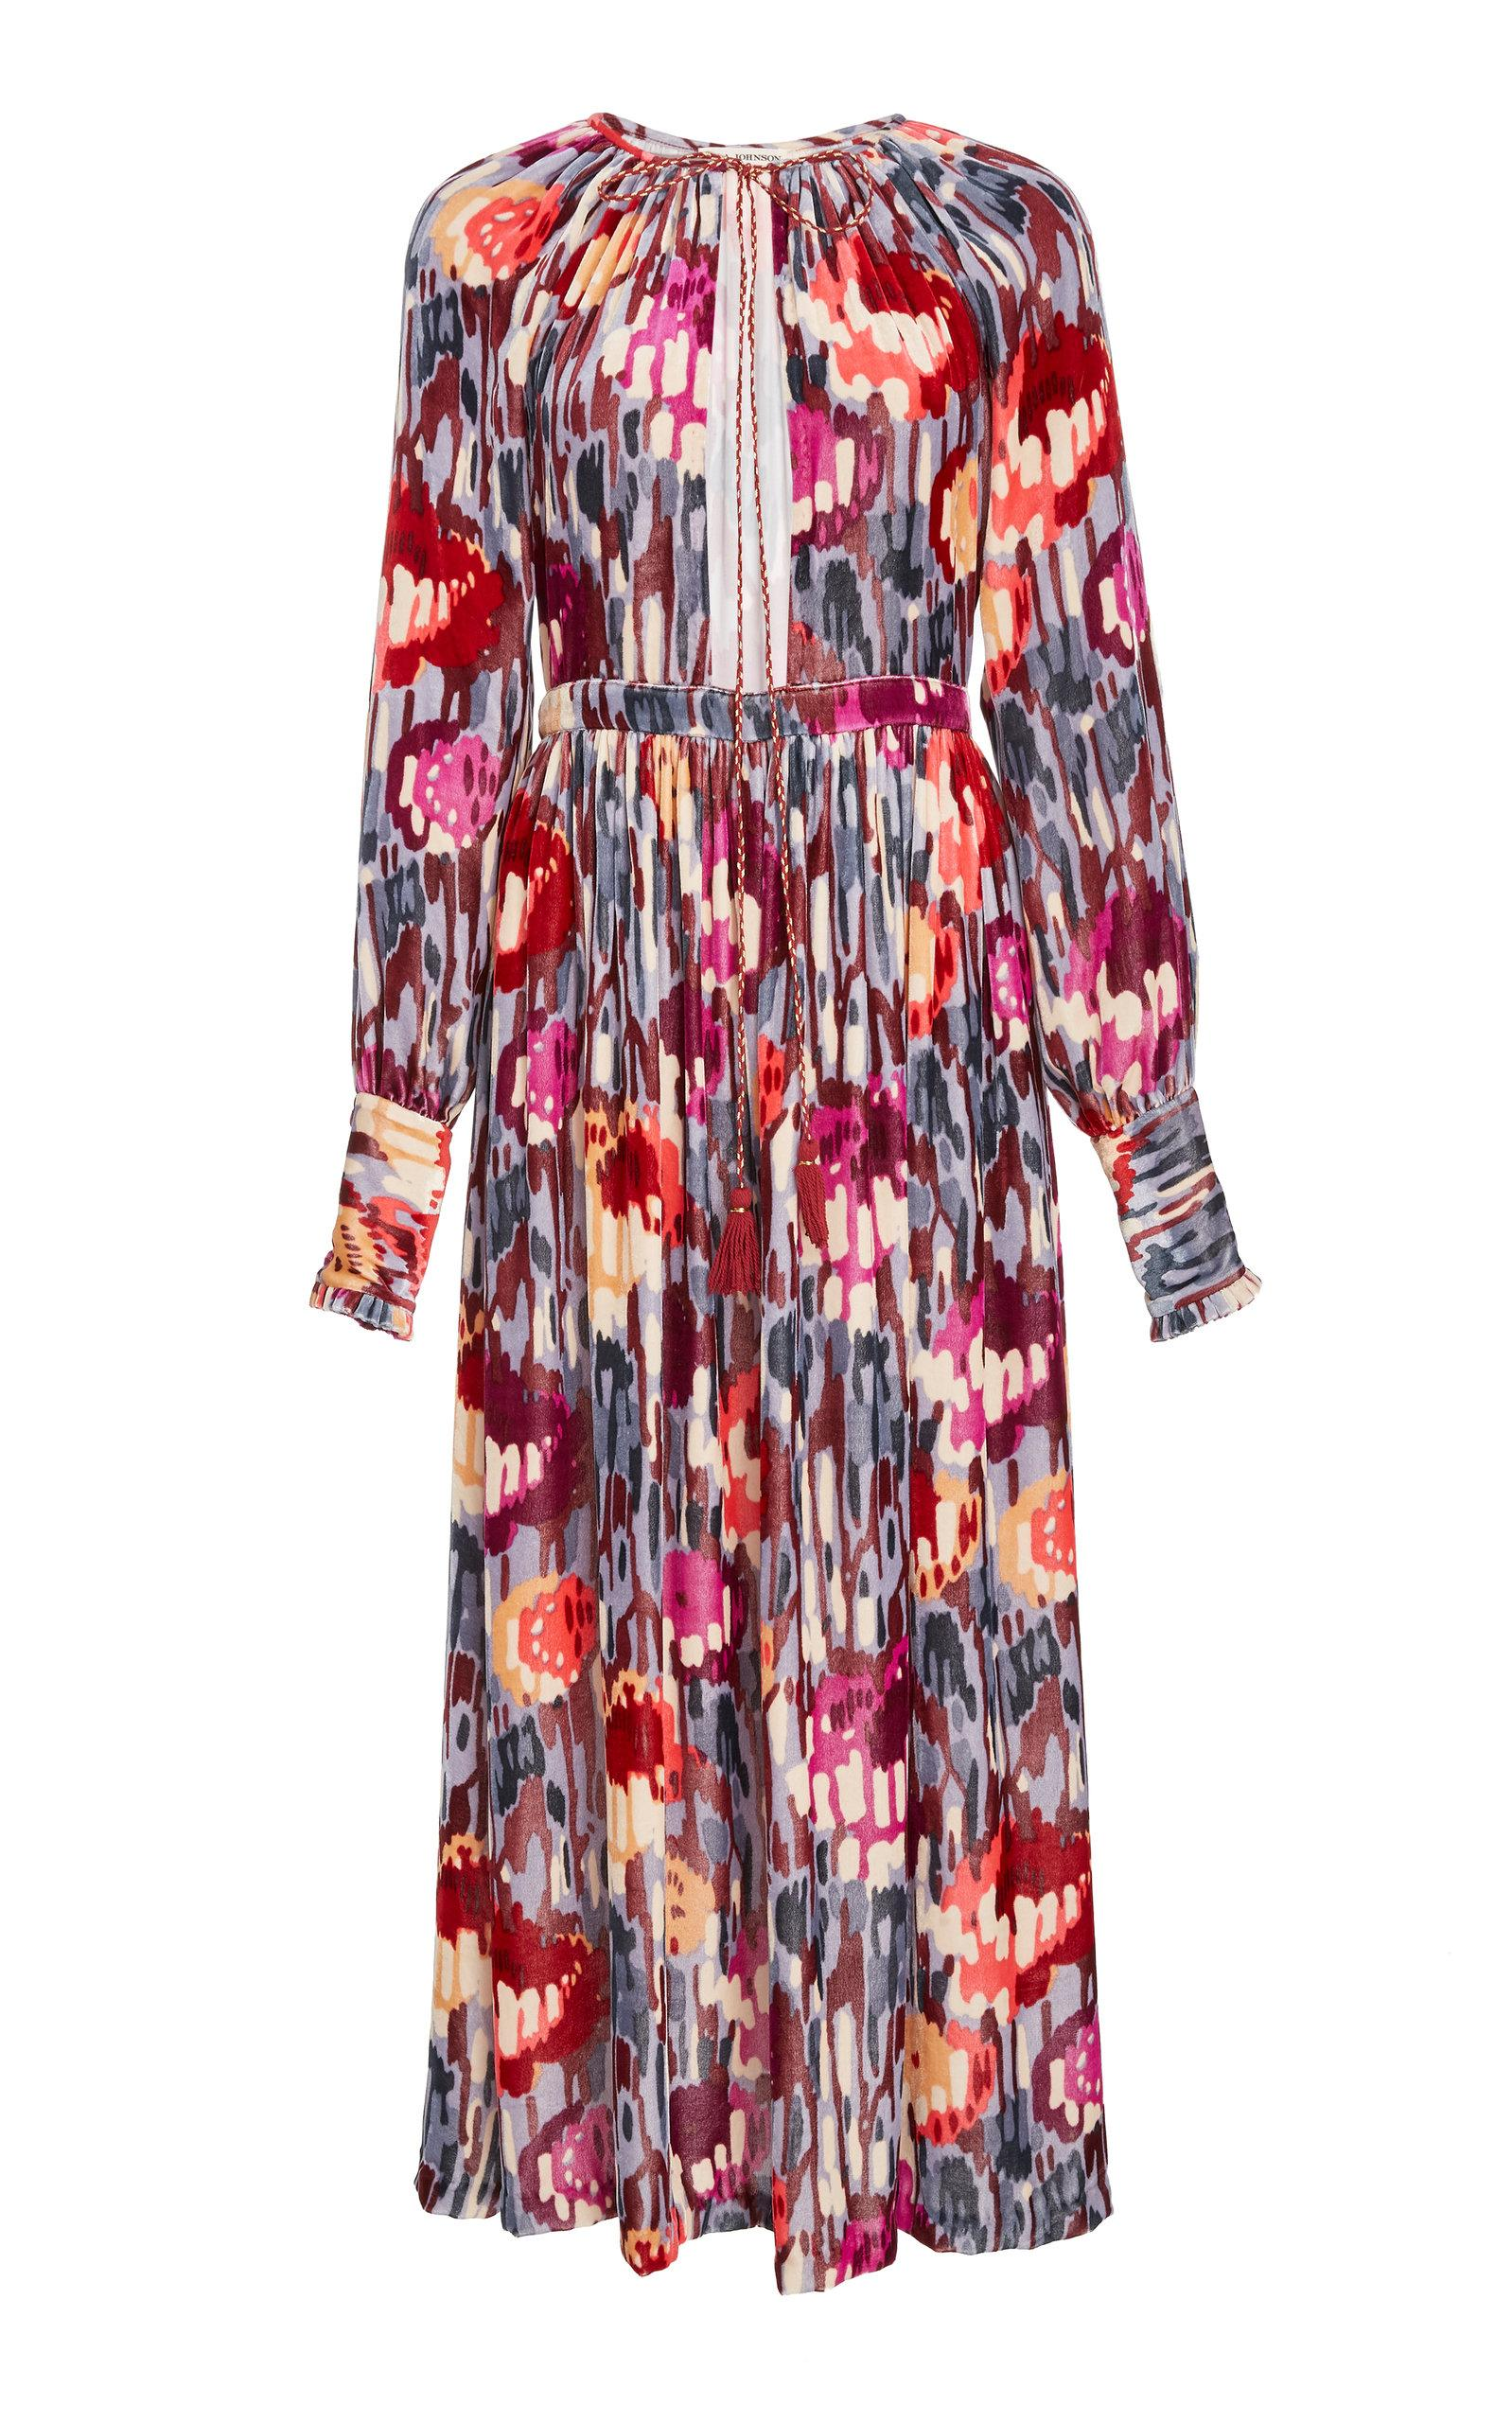 0fc22c71a92 ULLA JOHNSON. Talitha Velvet Dress in Multi.  775 775. Available From 0  Store